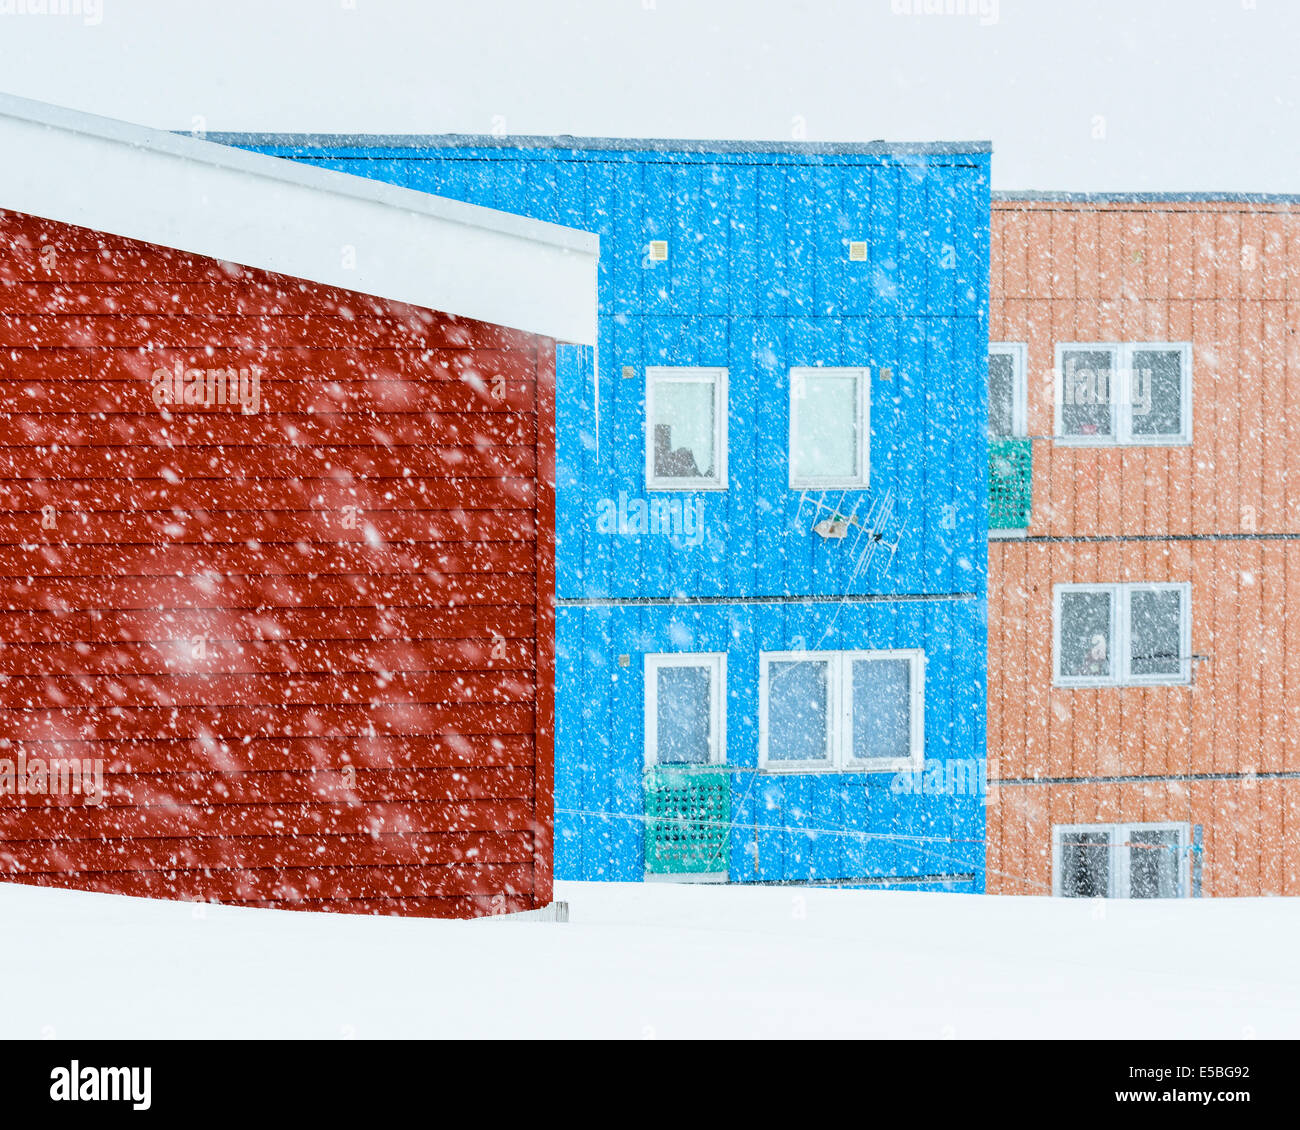 Snowfall in front of colorful residential area - Stock Image